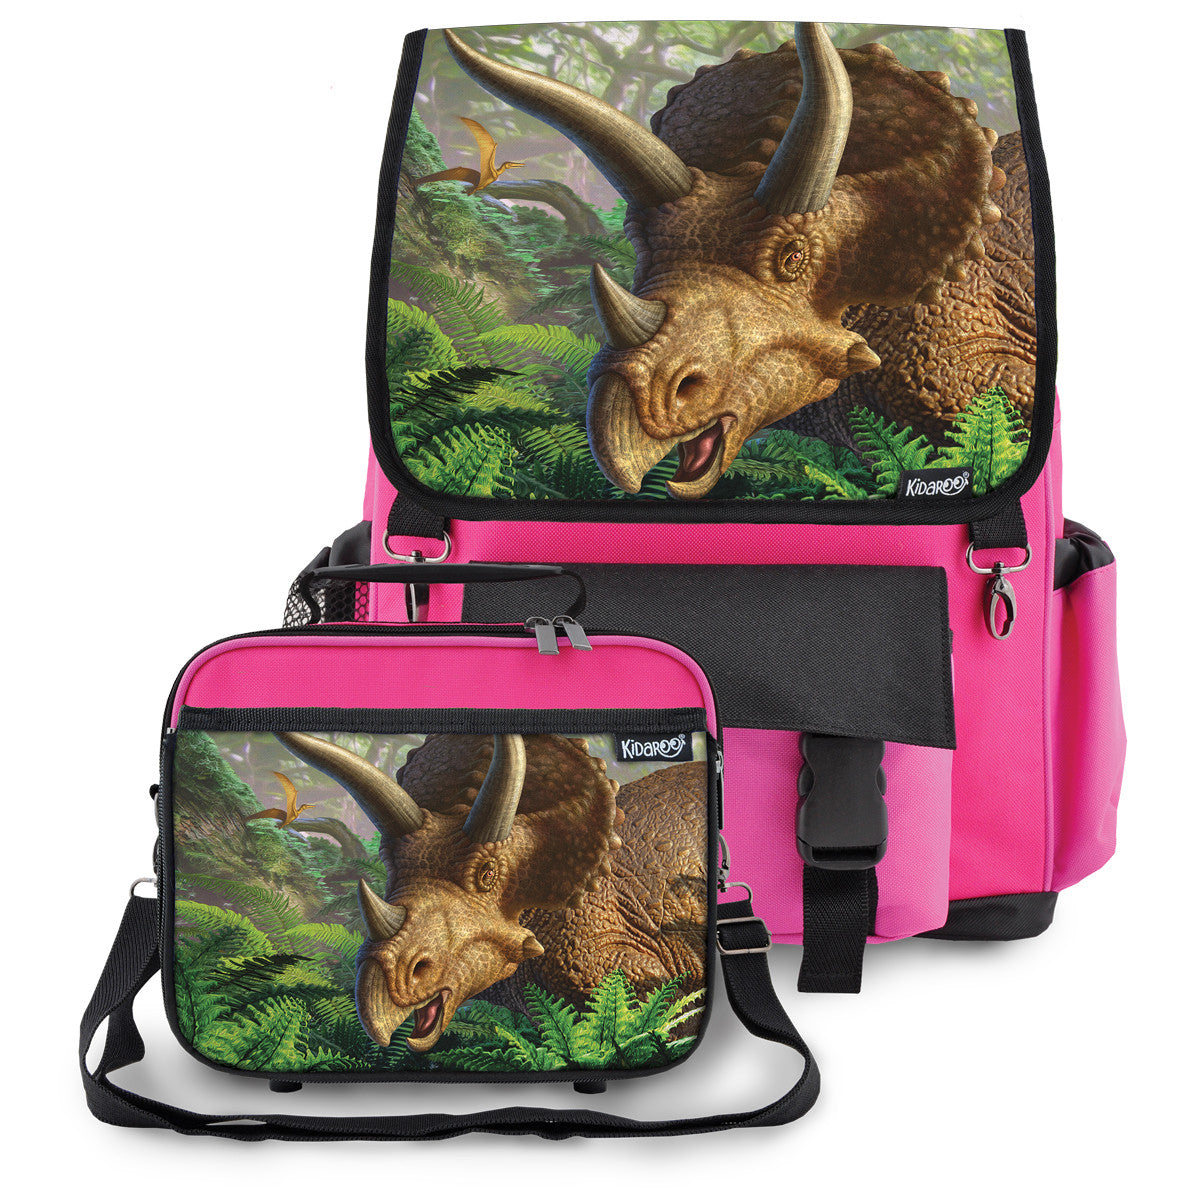 Kidaroo Pink Triceratops Dinosaur School Backpack & Lunchbox Set for Boys, Girls, Kids